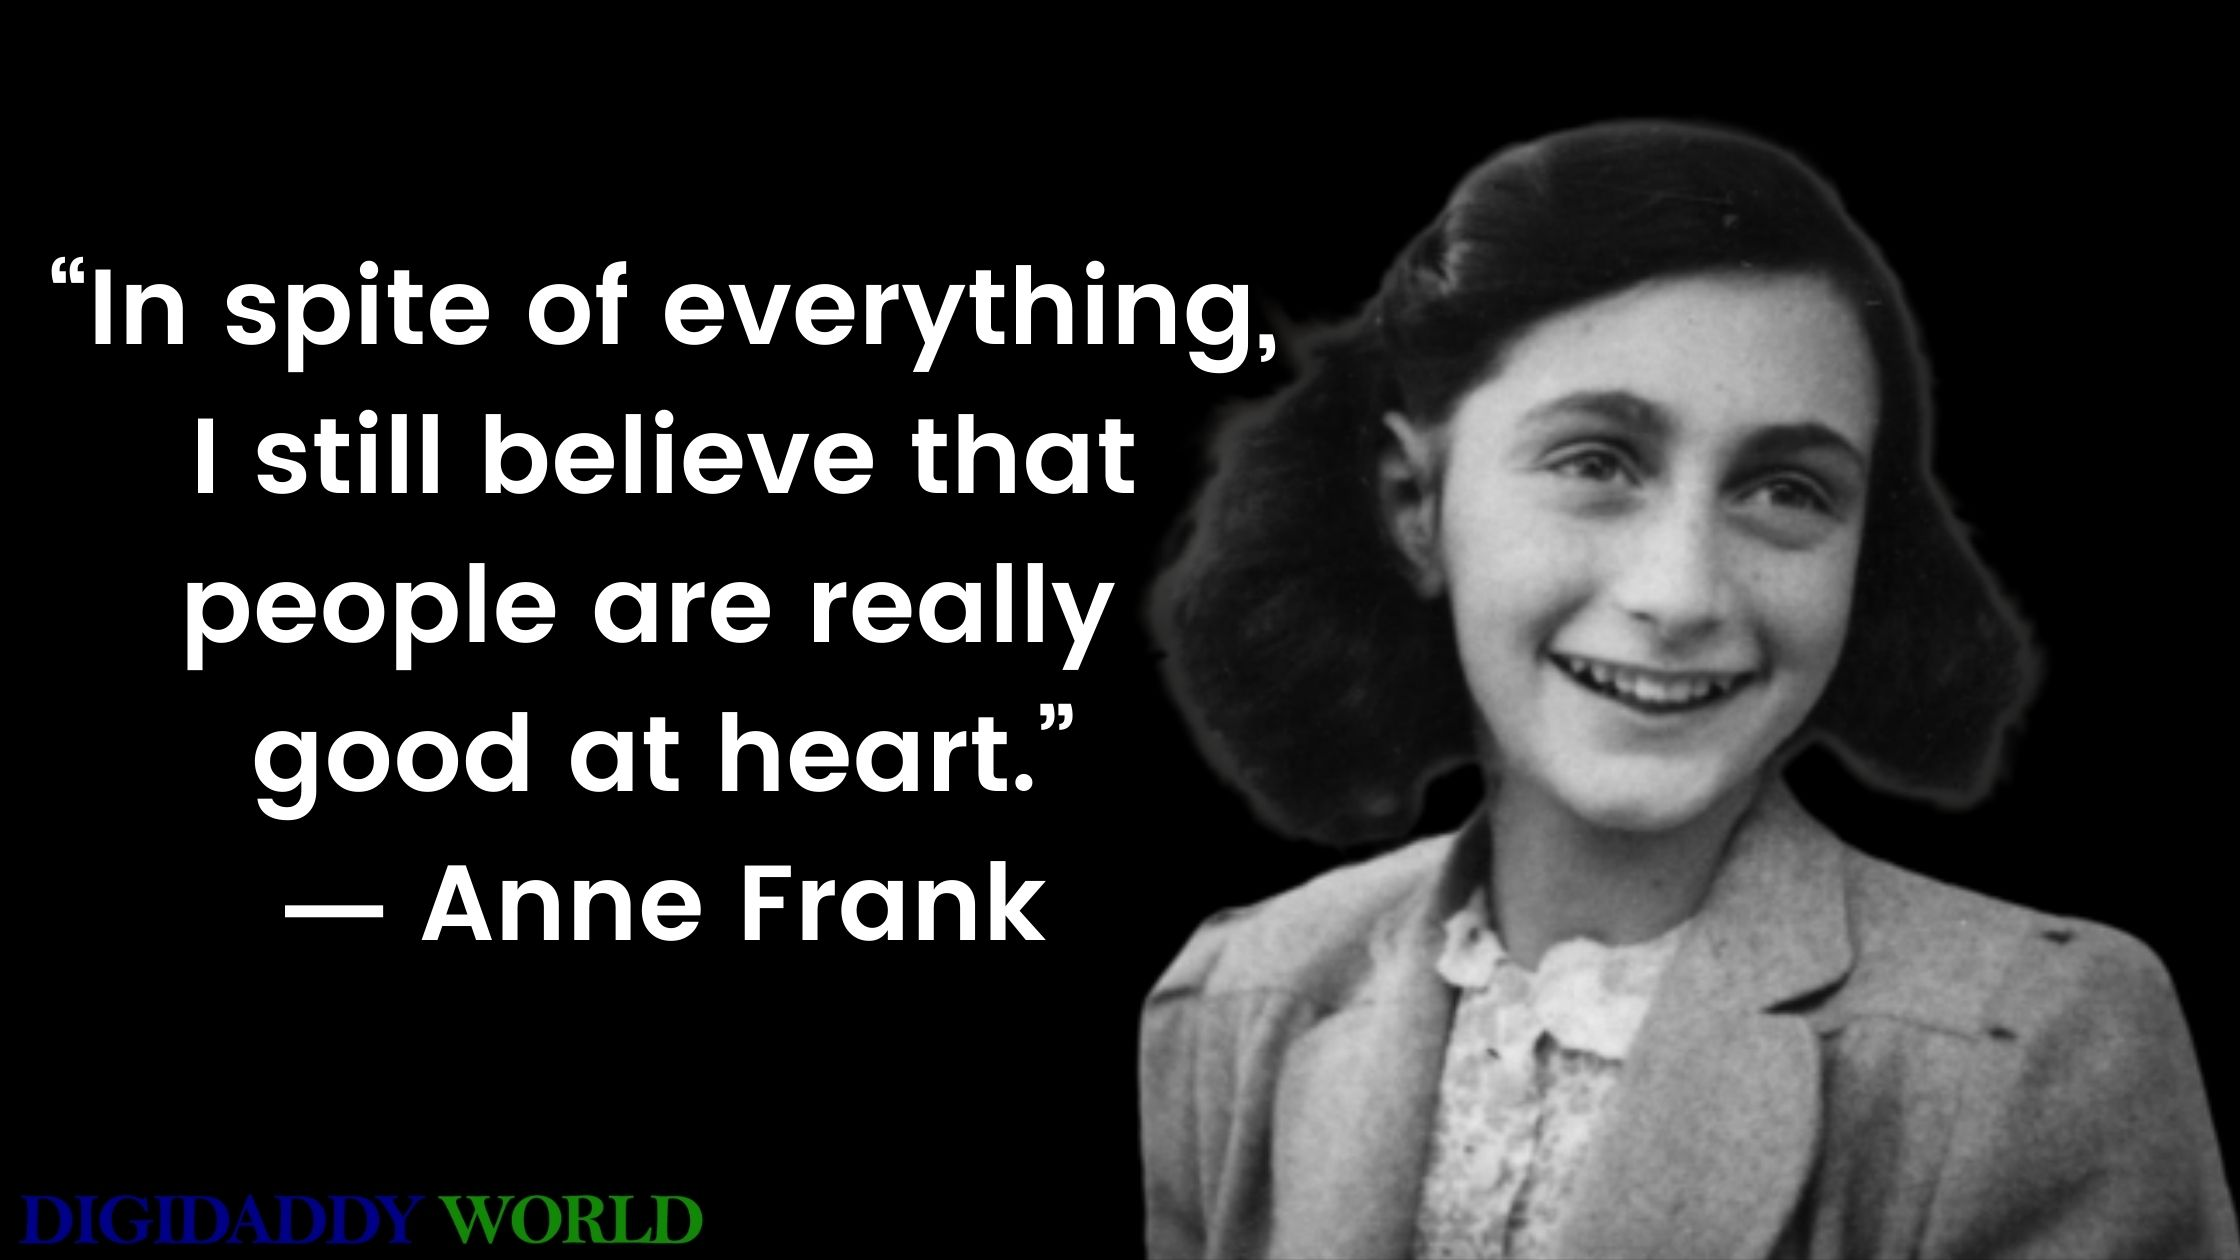 Anne Frank Quotes About Life